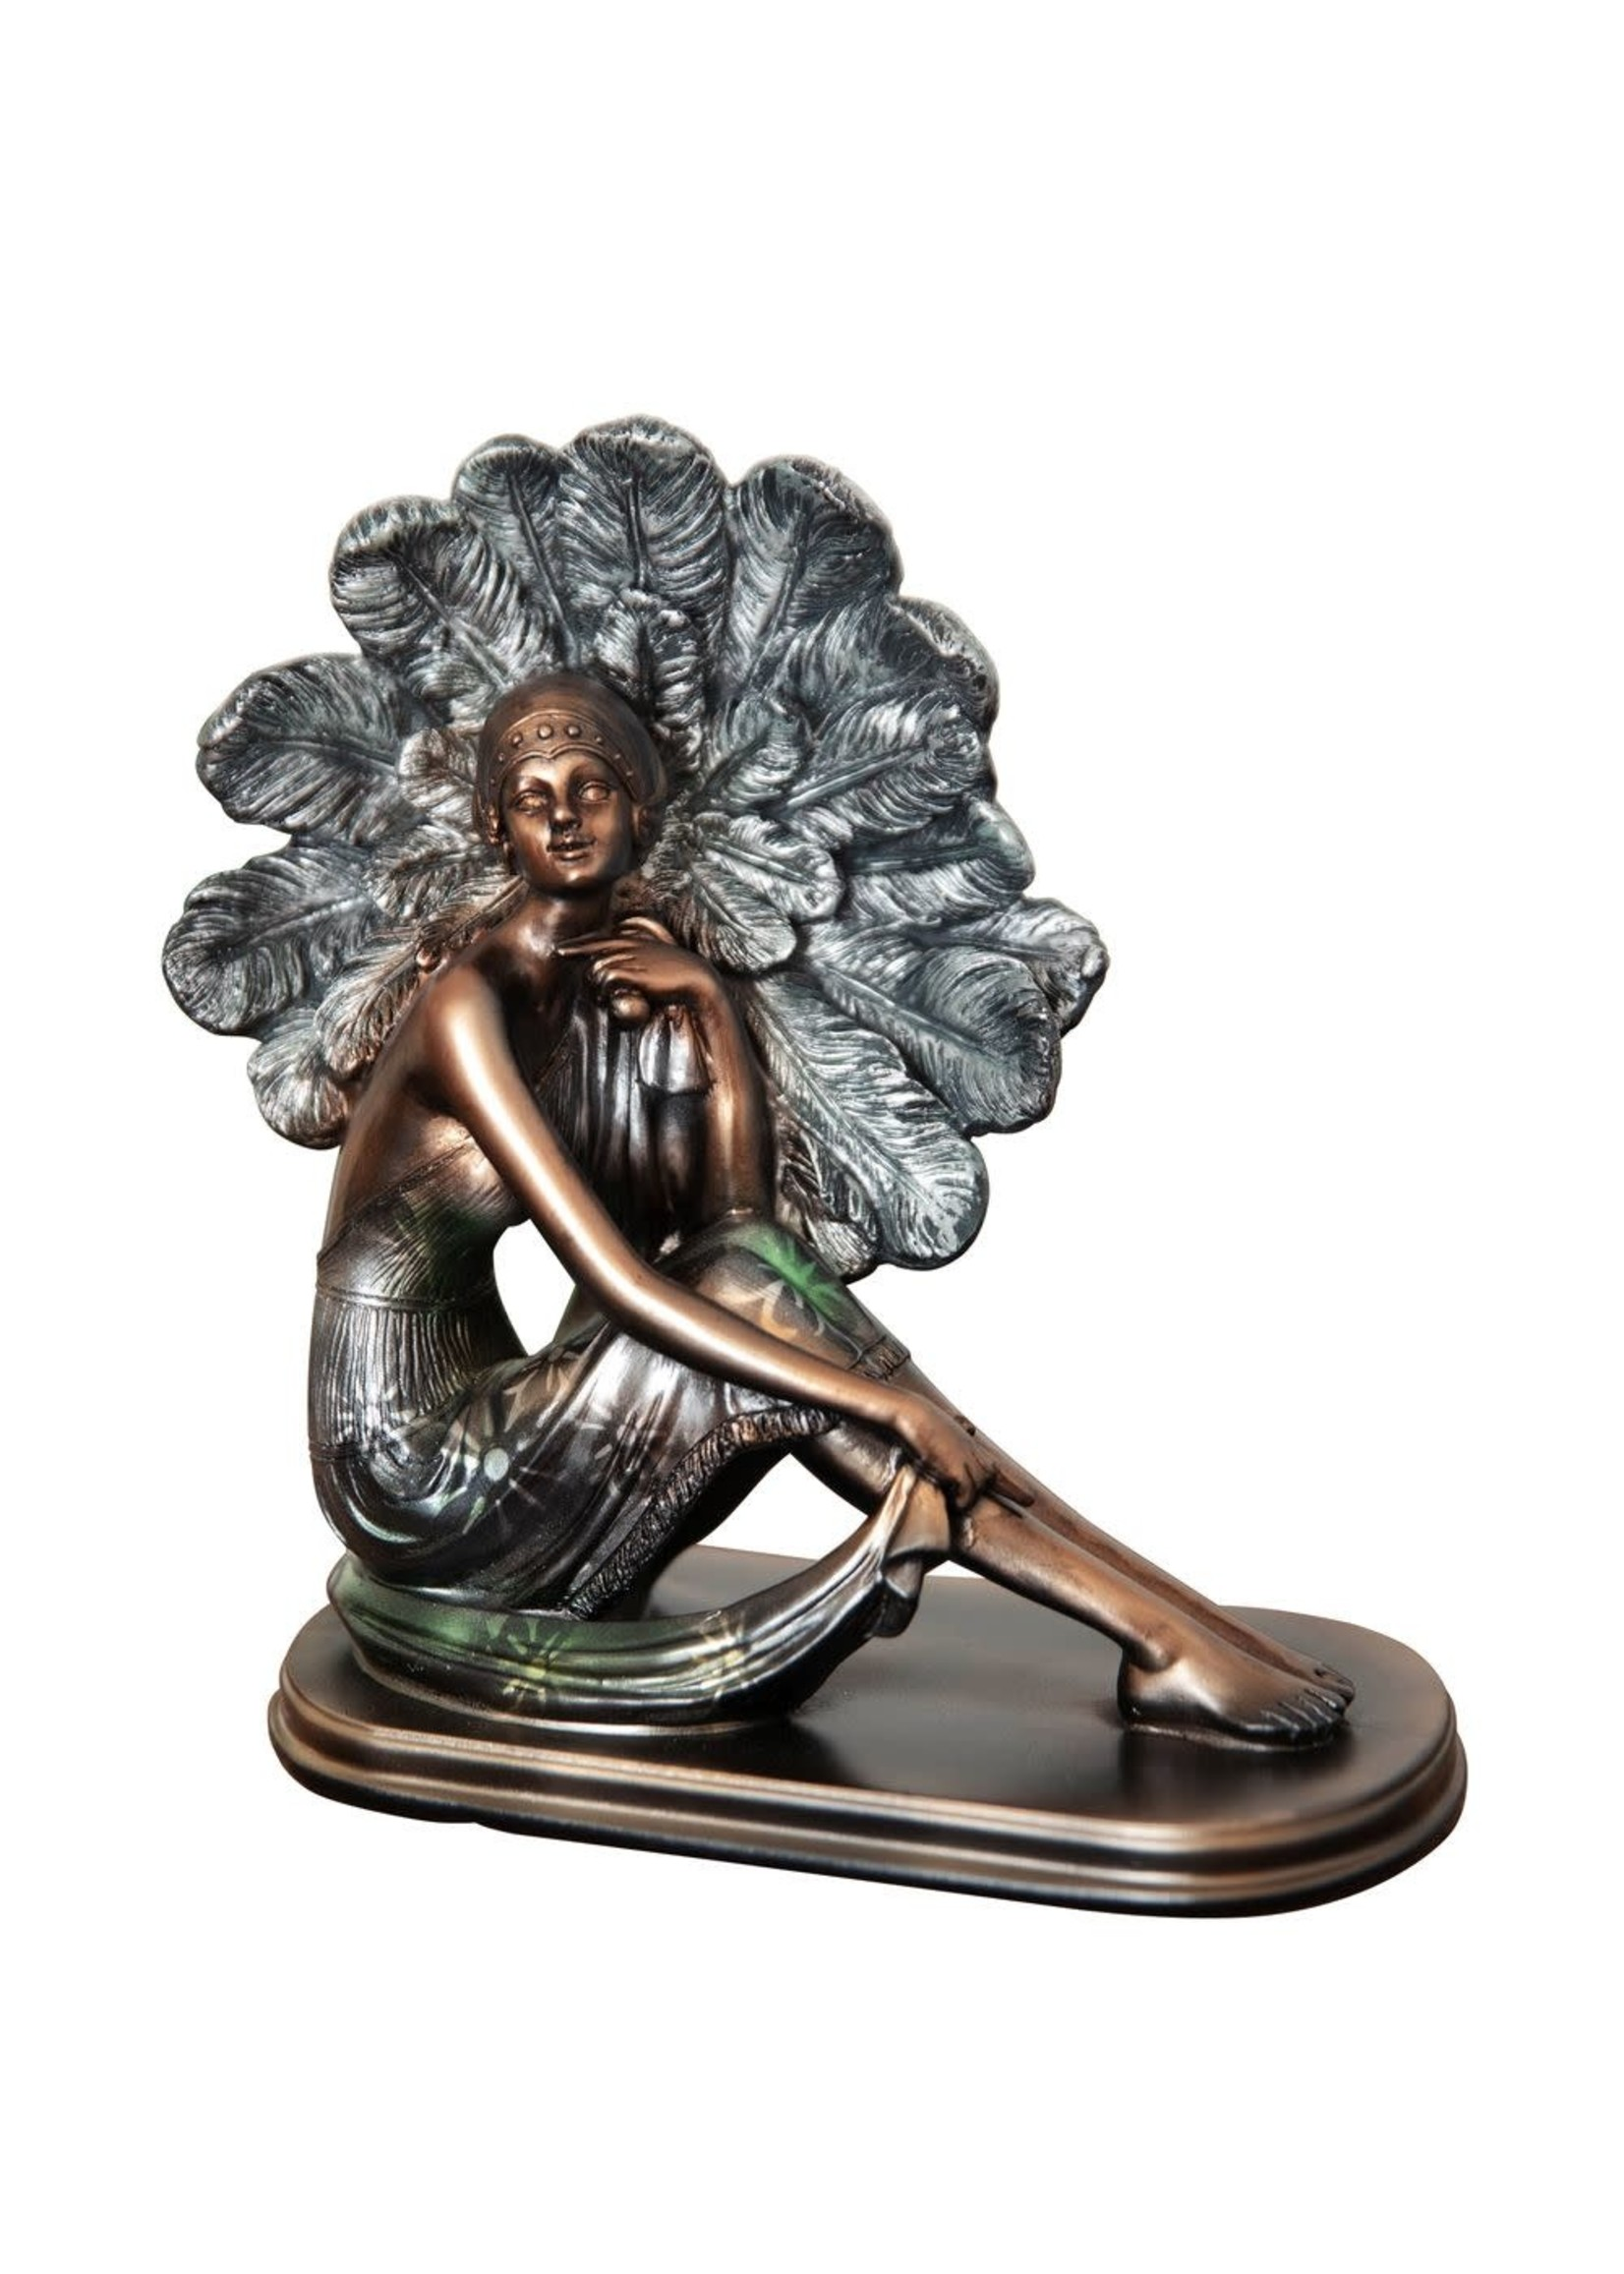 SILHOUETTE COLLECTION LADY FIGURINE BRONZE & GREEN 21CM